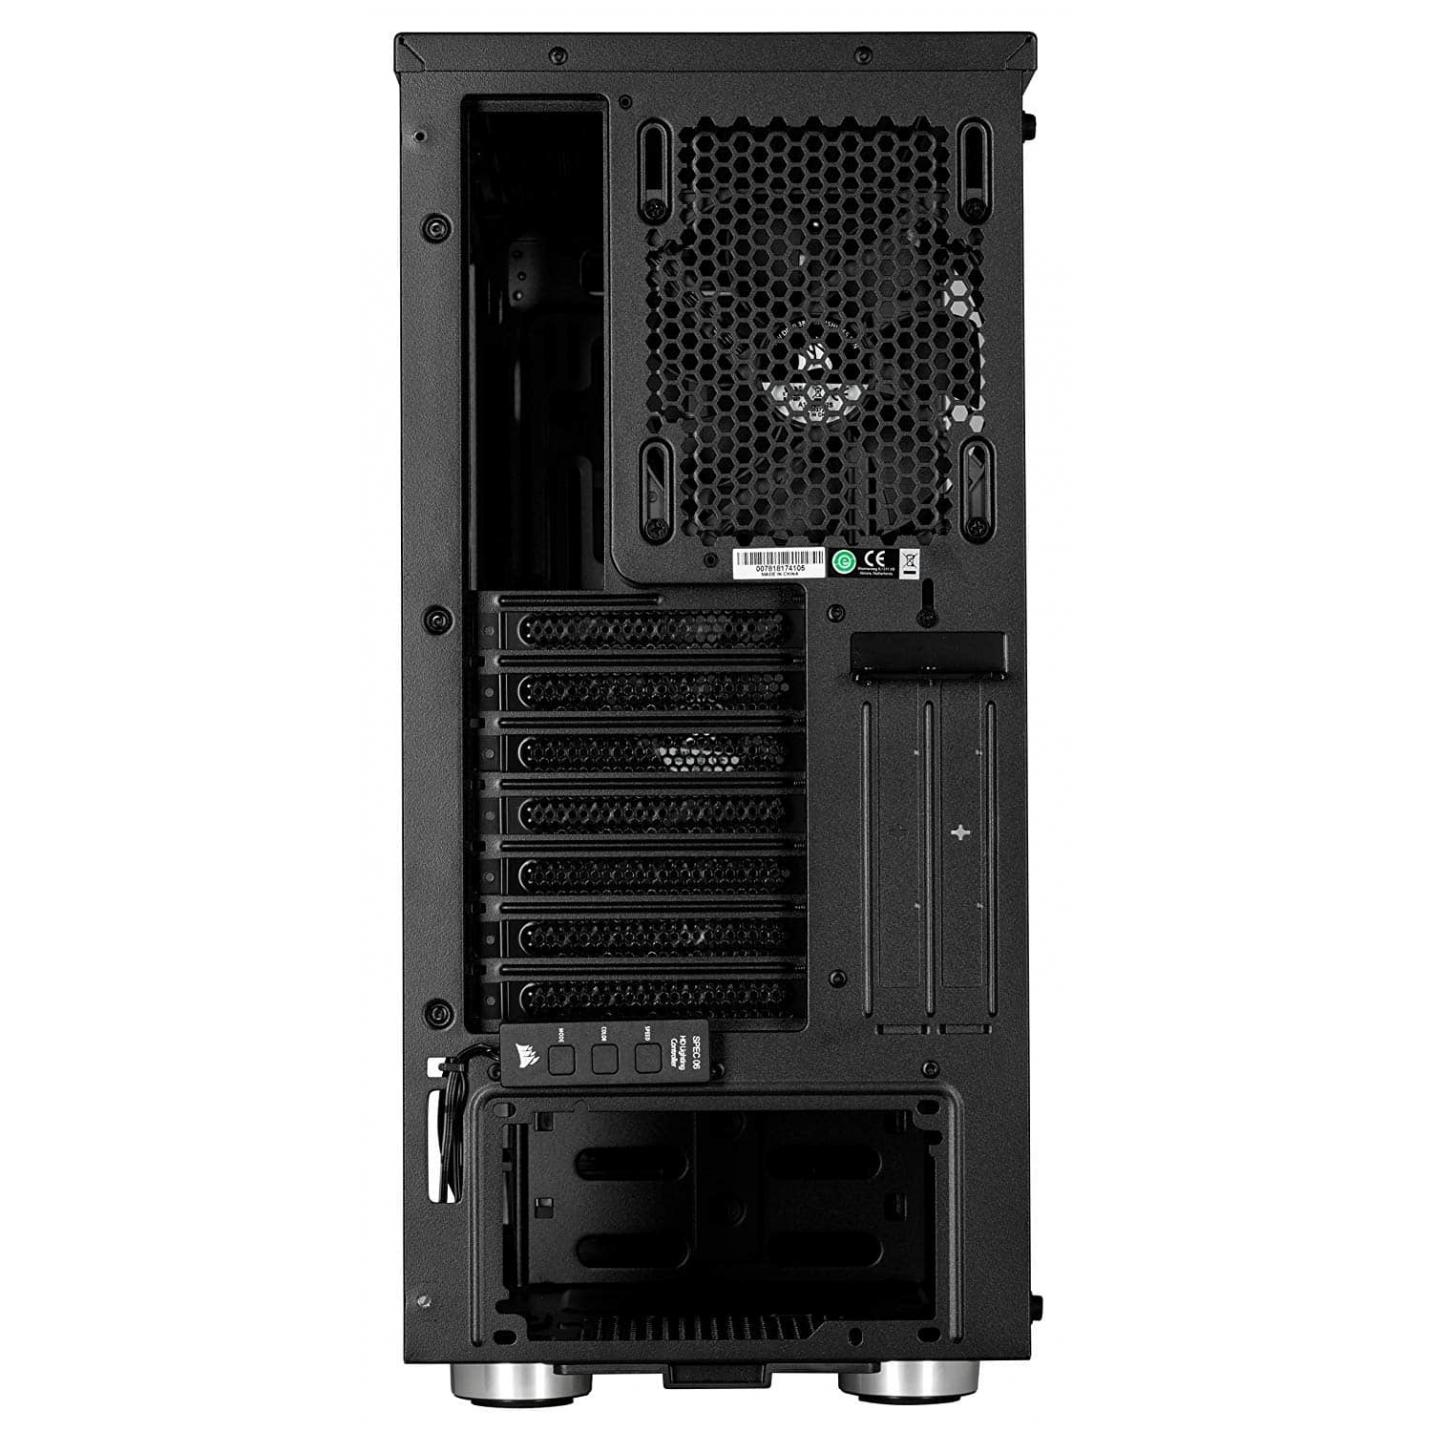 CORSAIR Carbide SPEC-06 RGB Mid-Tower Gaming Case, Tempered Glass